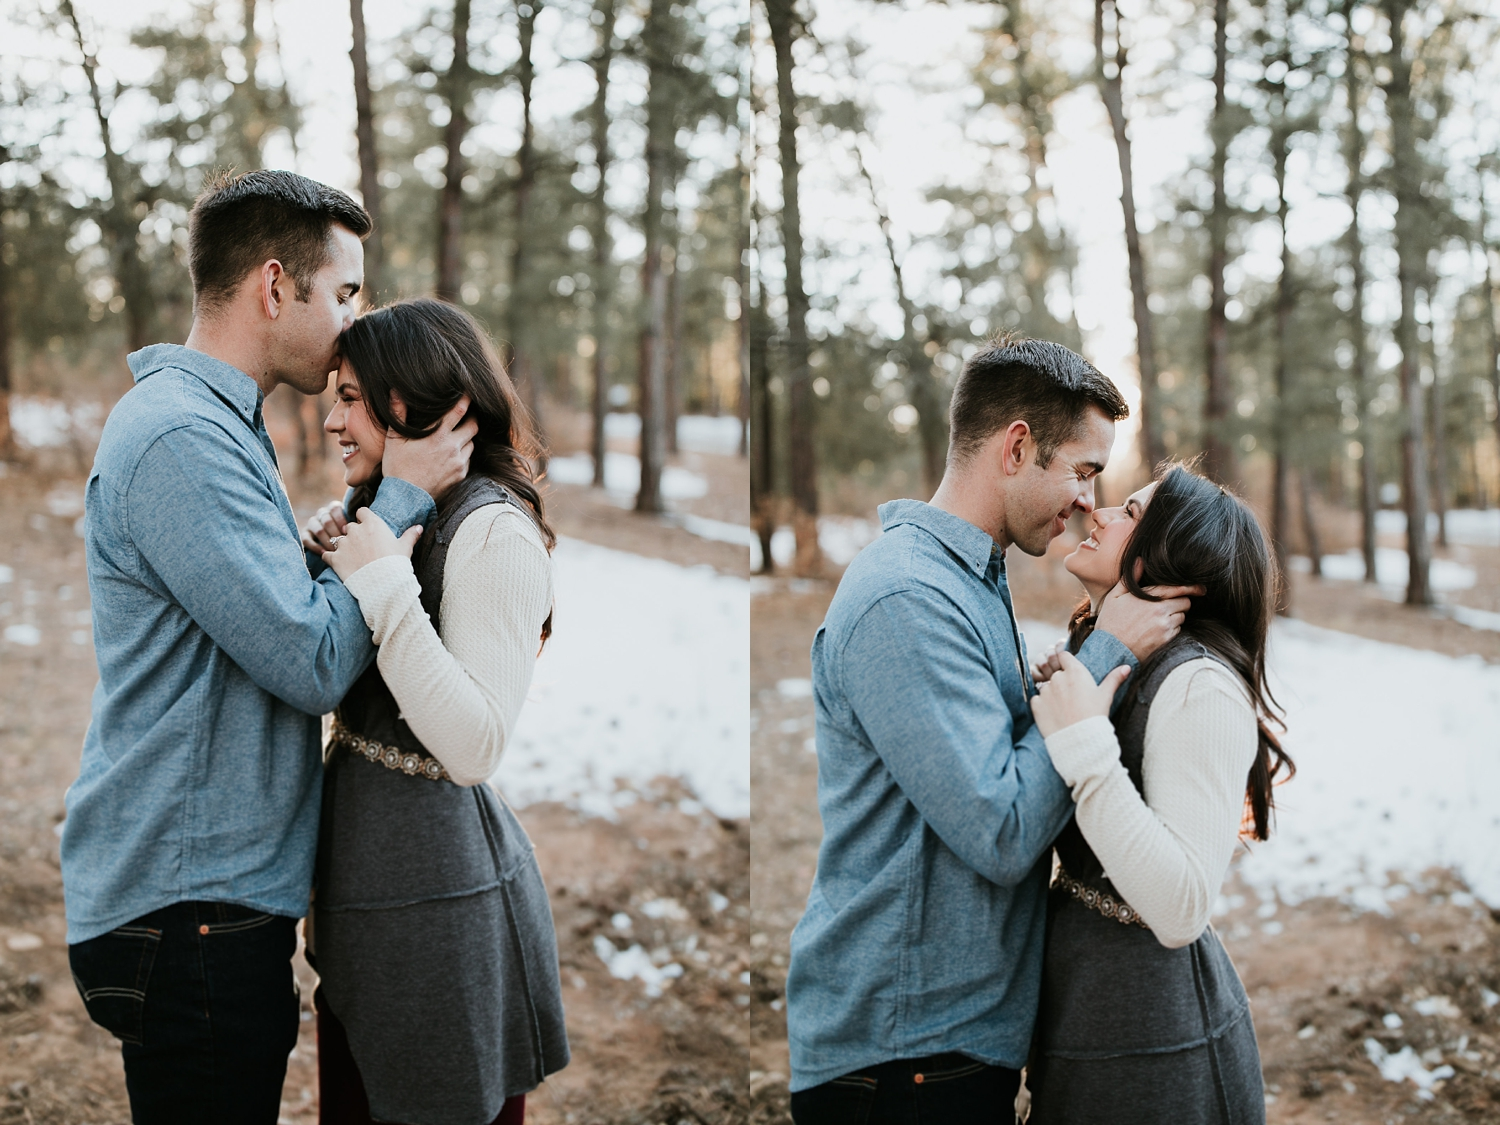 Alicia+lucia+photography+-+albuquerque+wedding+photographer+-+santa+fe+wedding+photography+-+new+mexico+wedding+photographer+-+new+mexico+engagement+-+winter+engagement+session_0011.jpg